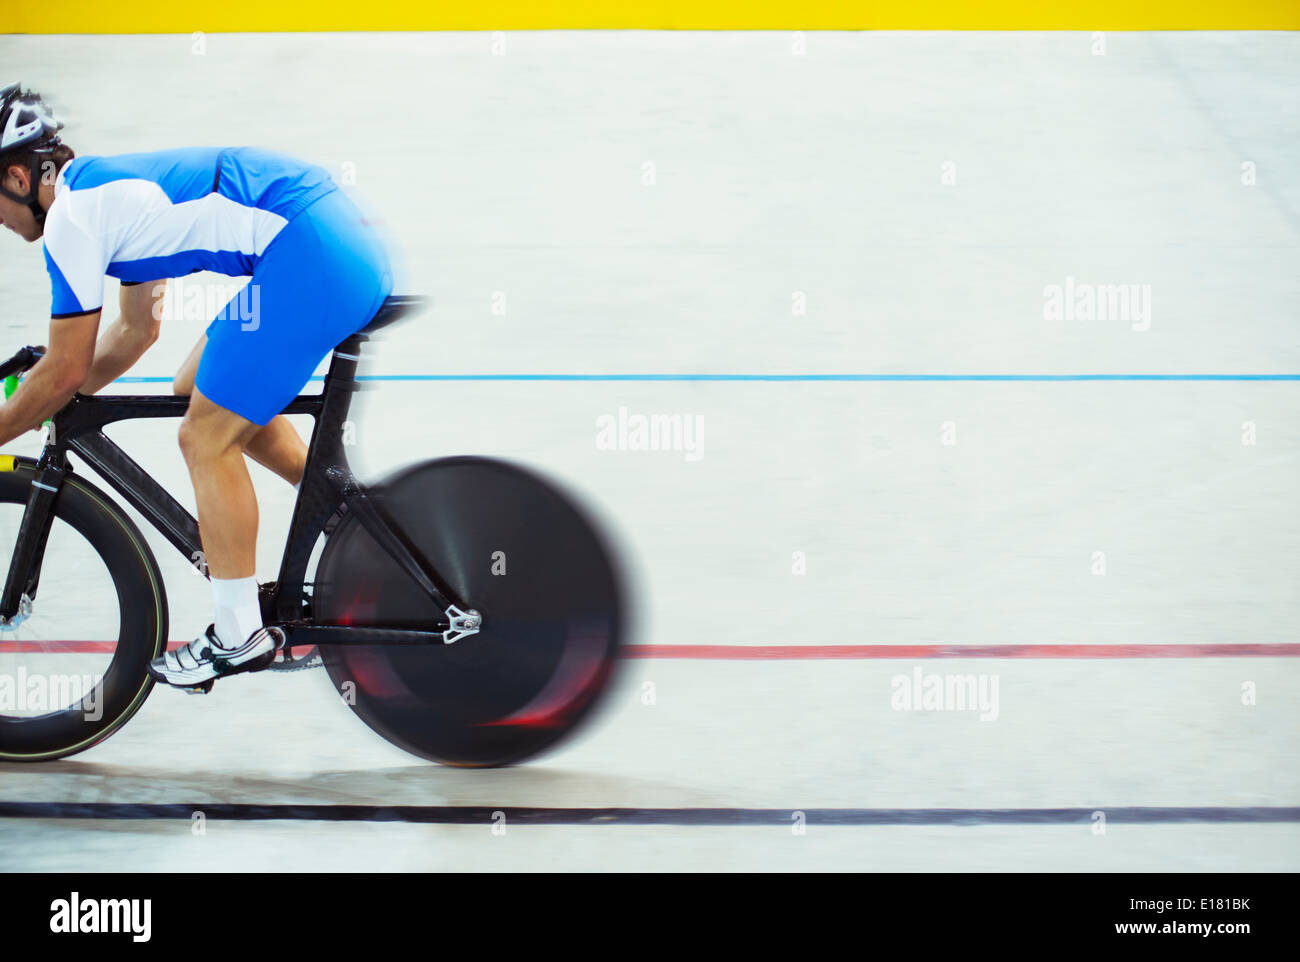 Track cyclist riding in velodrome - Stock Image